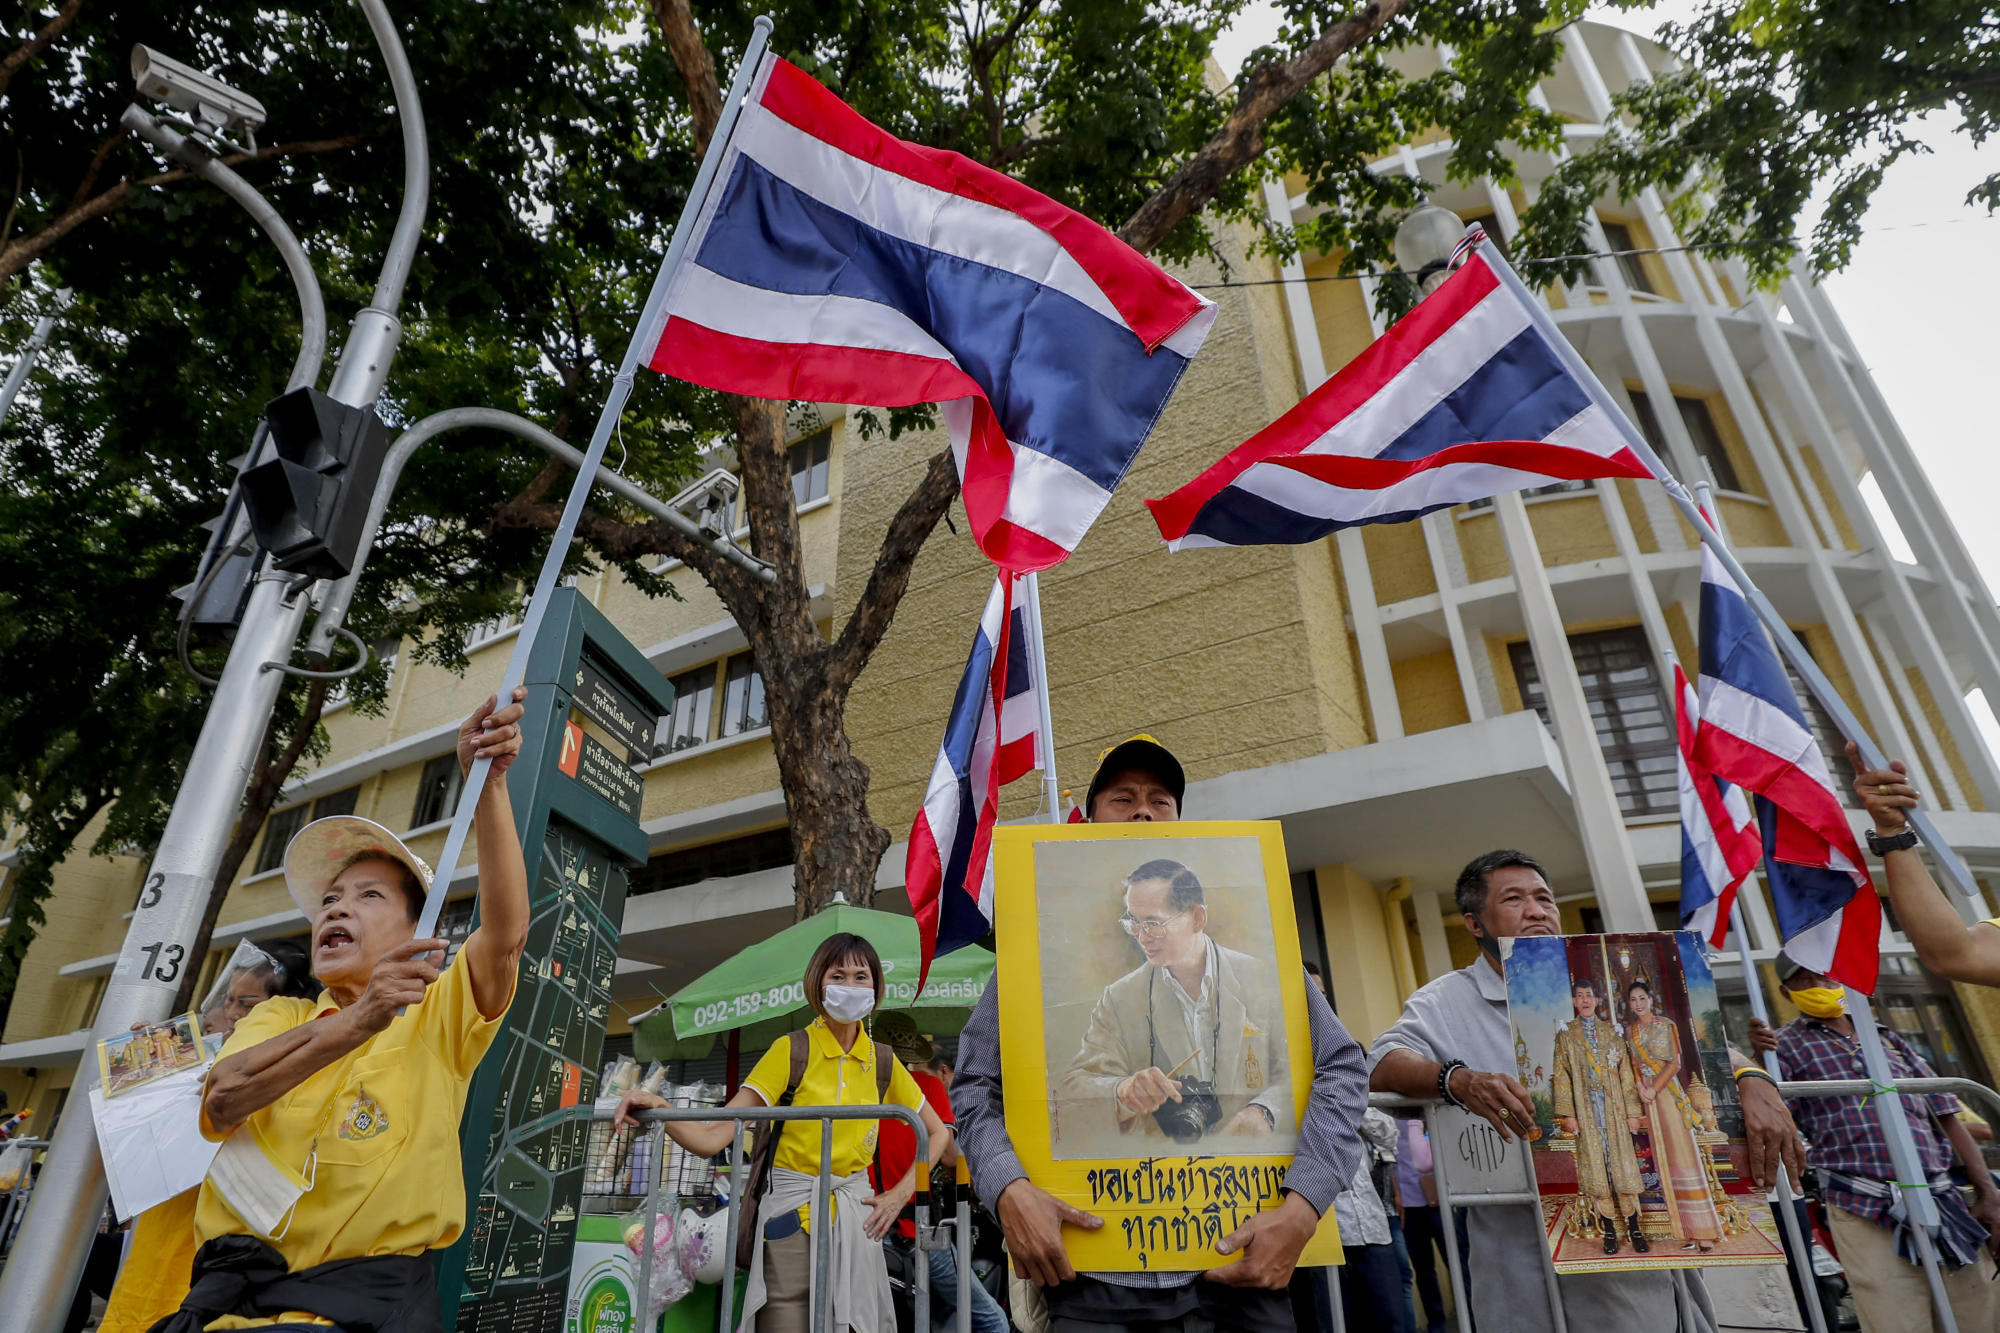 Thai police use water cannons on pro-democracy protesters